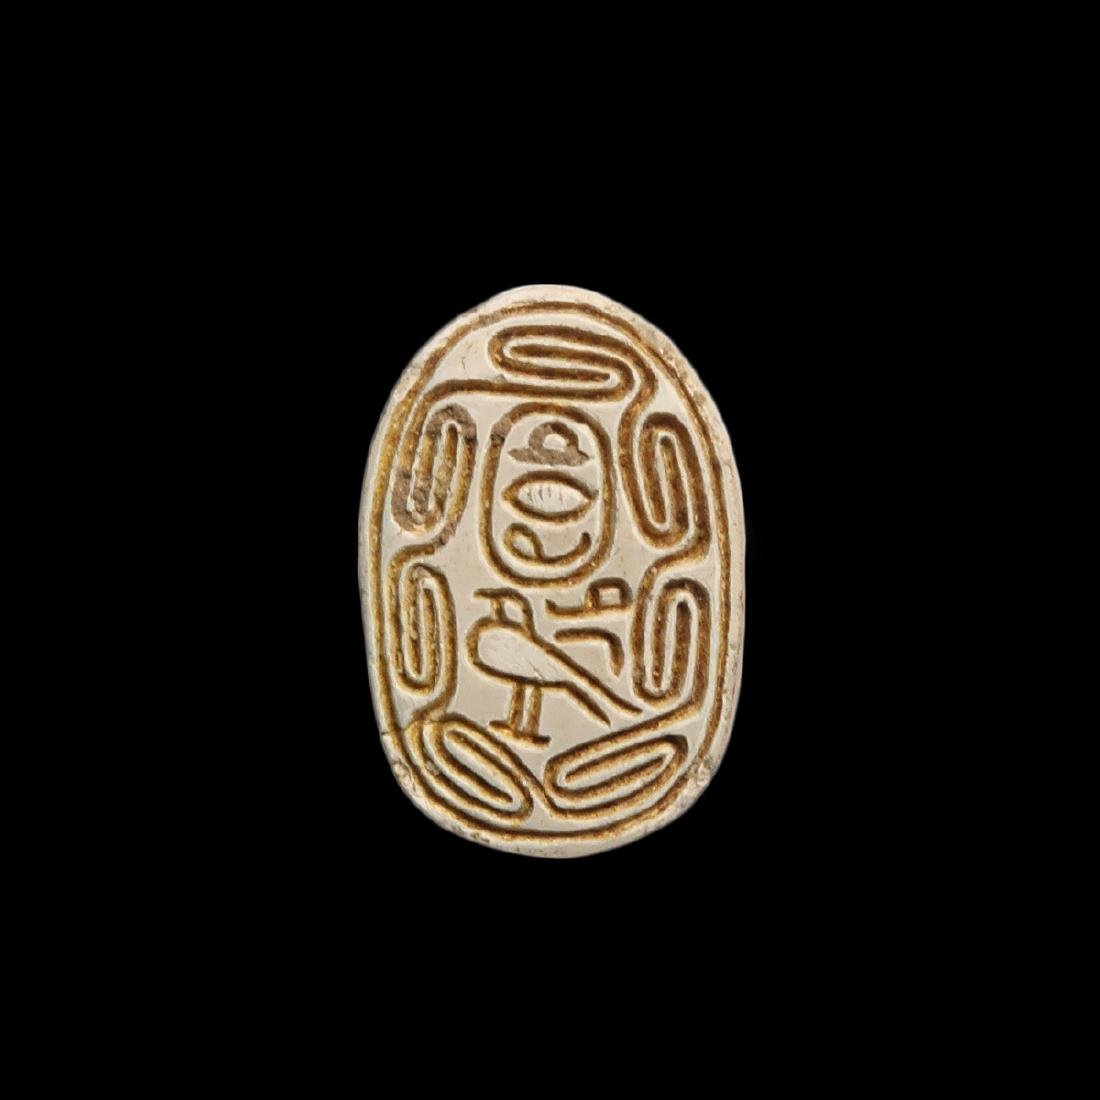 Egyptian Steatite Scarab with Horus and Eternity